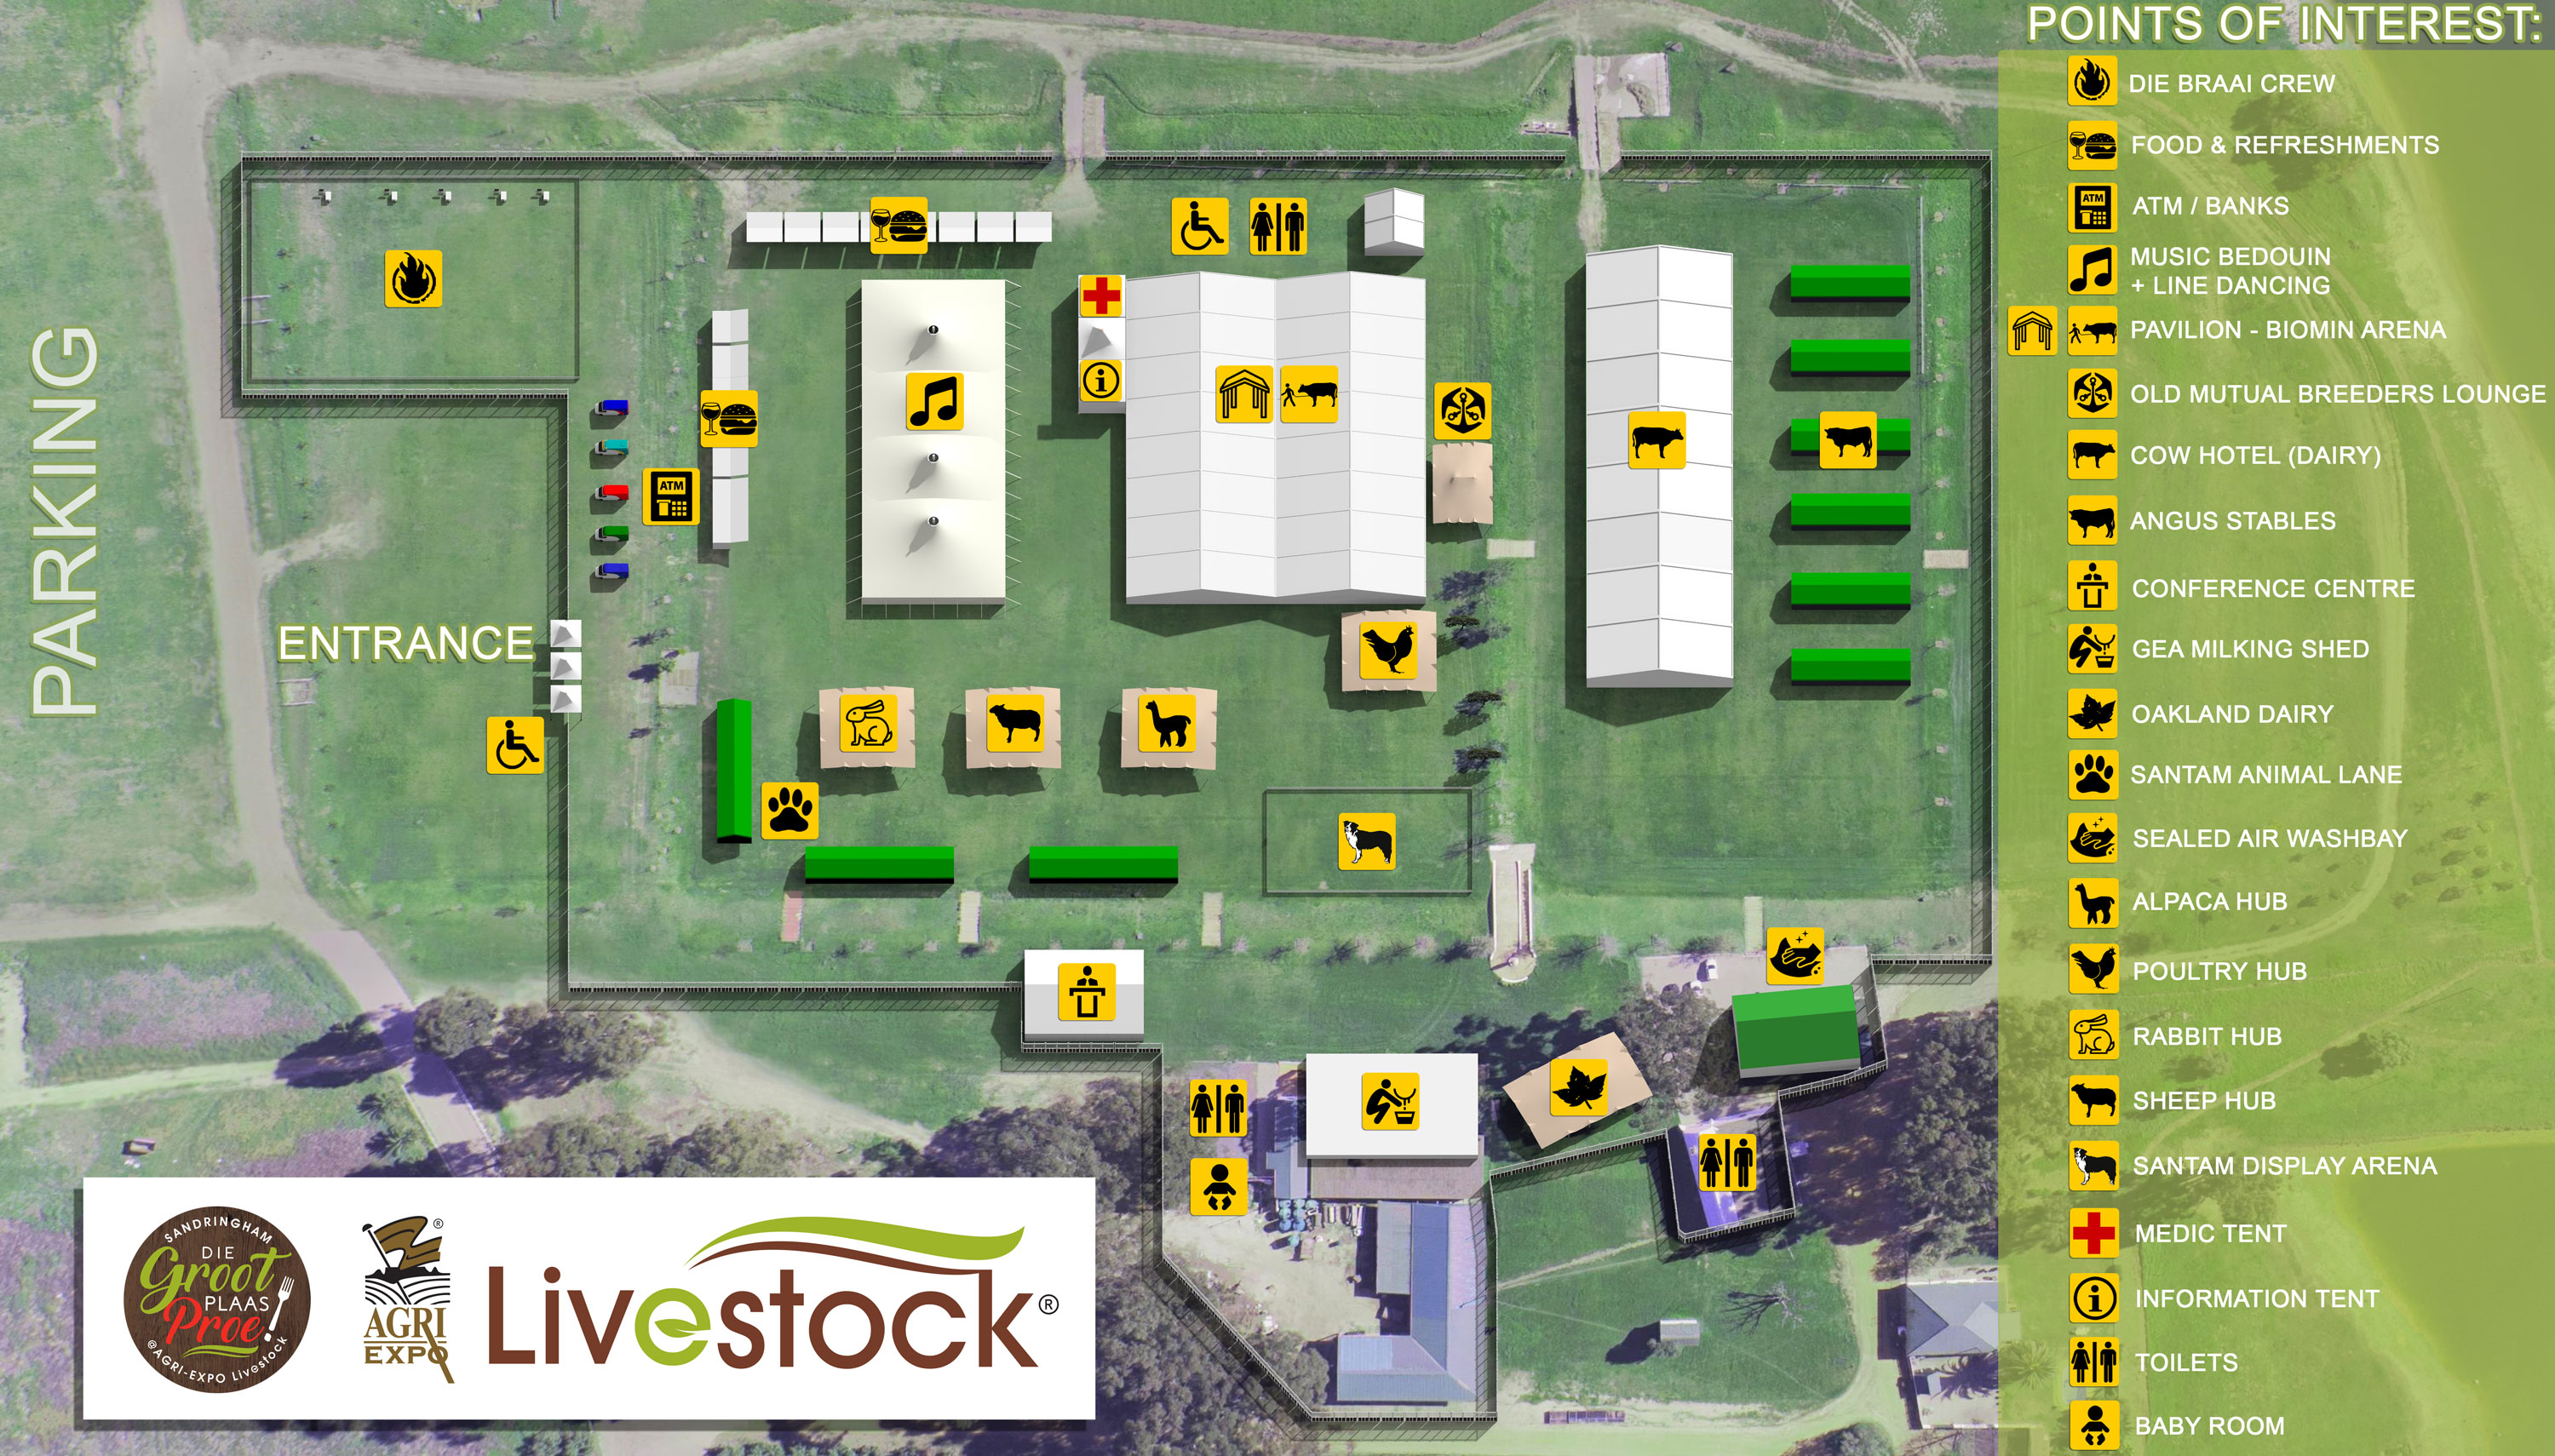 Livestock-Above-Render-Layout-with-Wording-2-and-logos-6—smaller